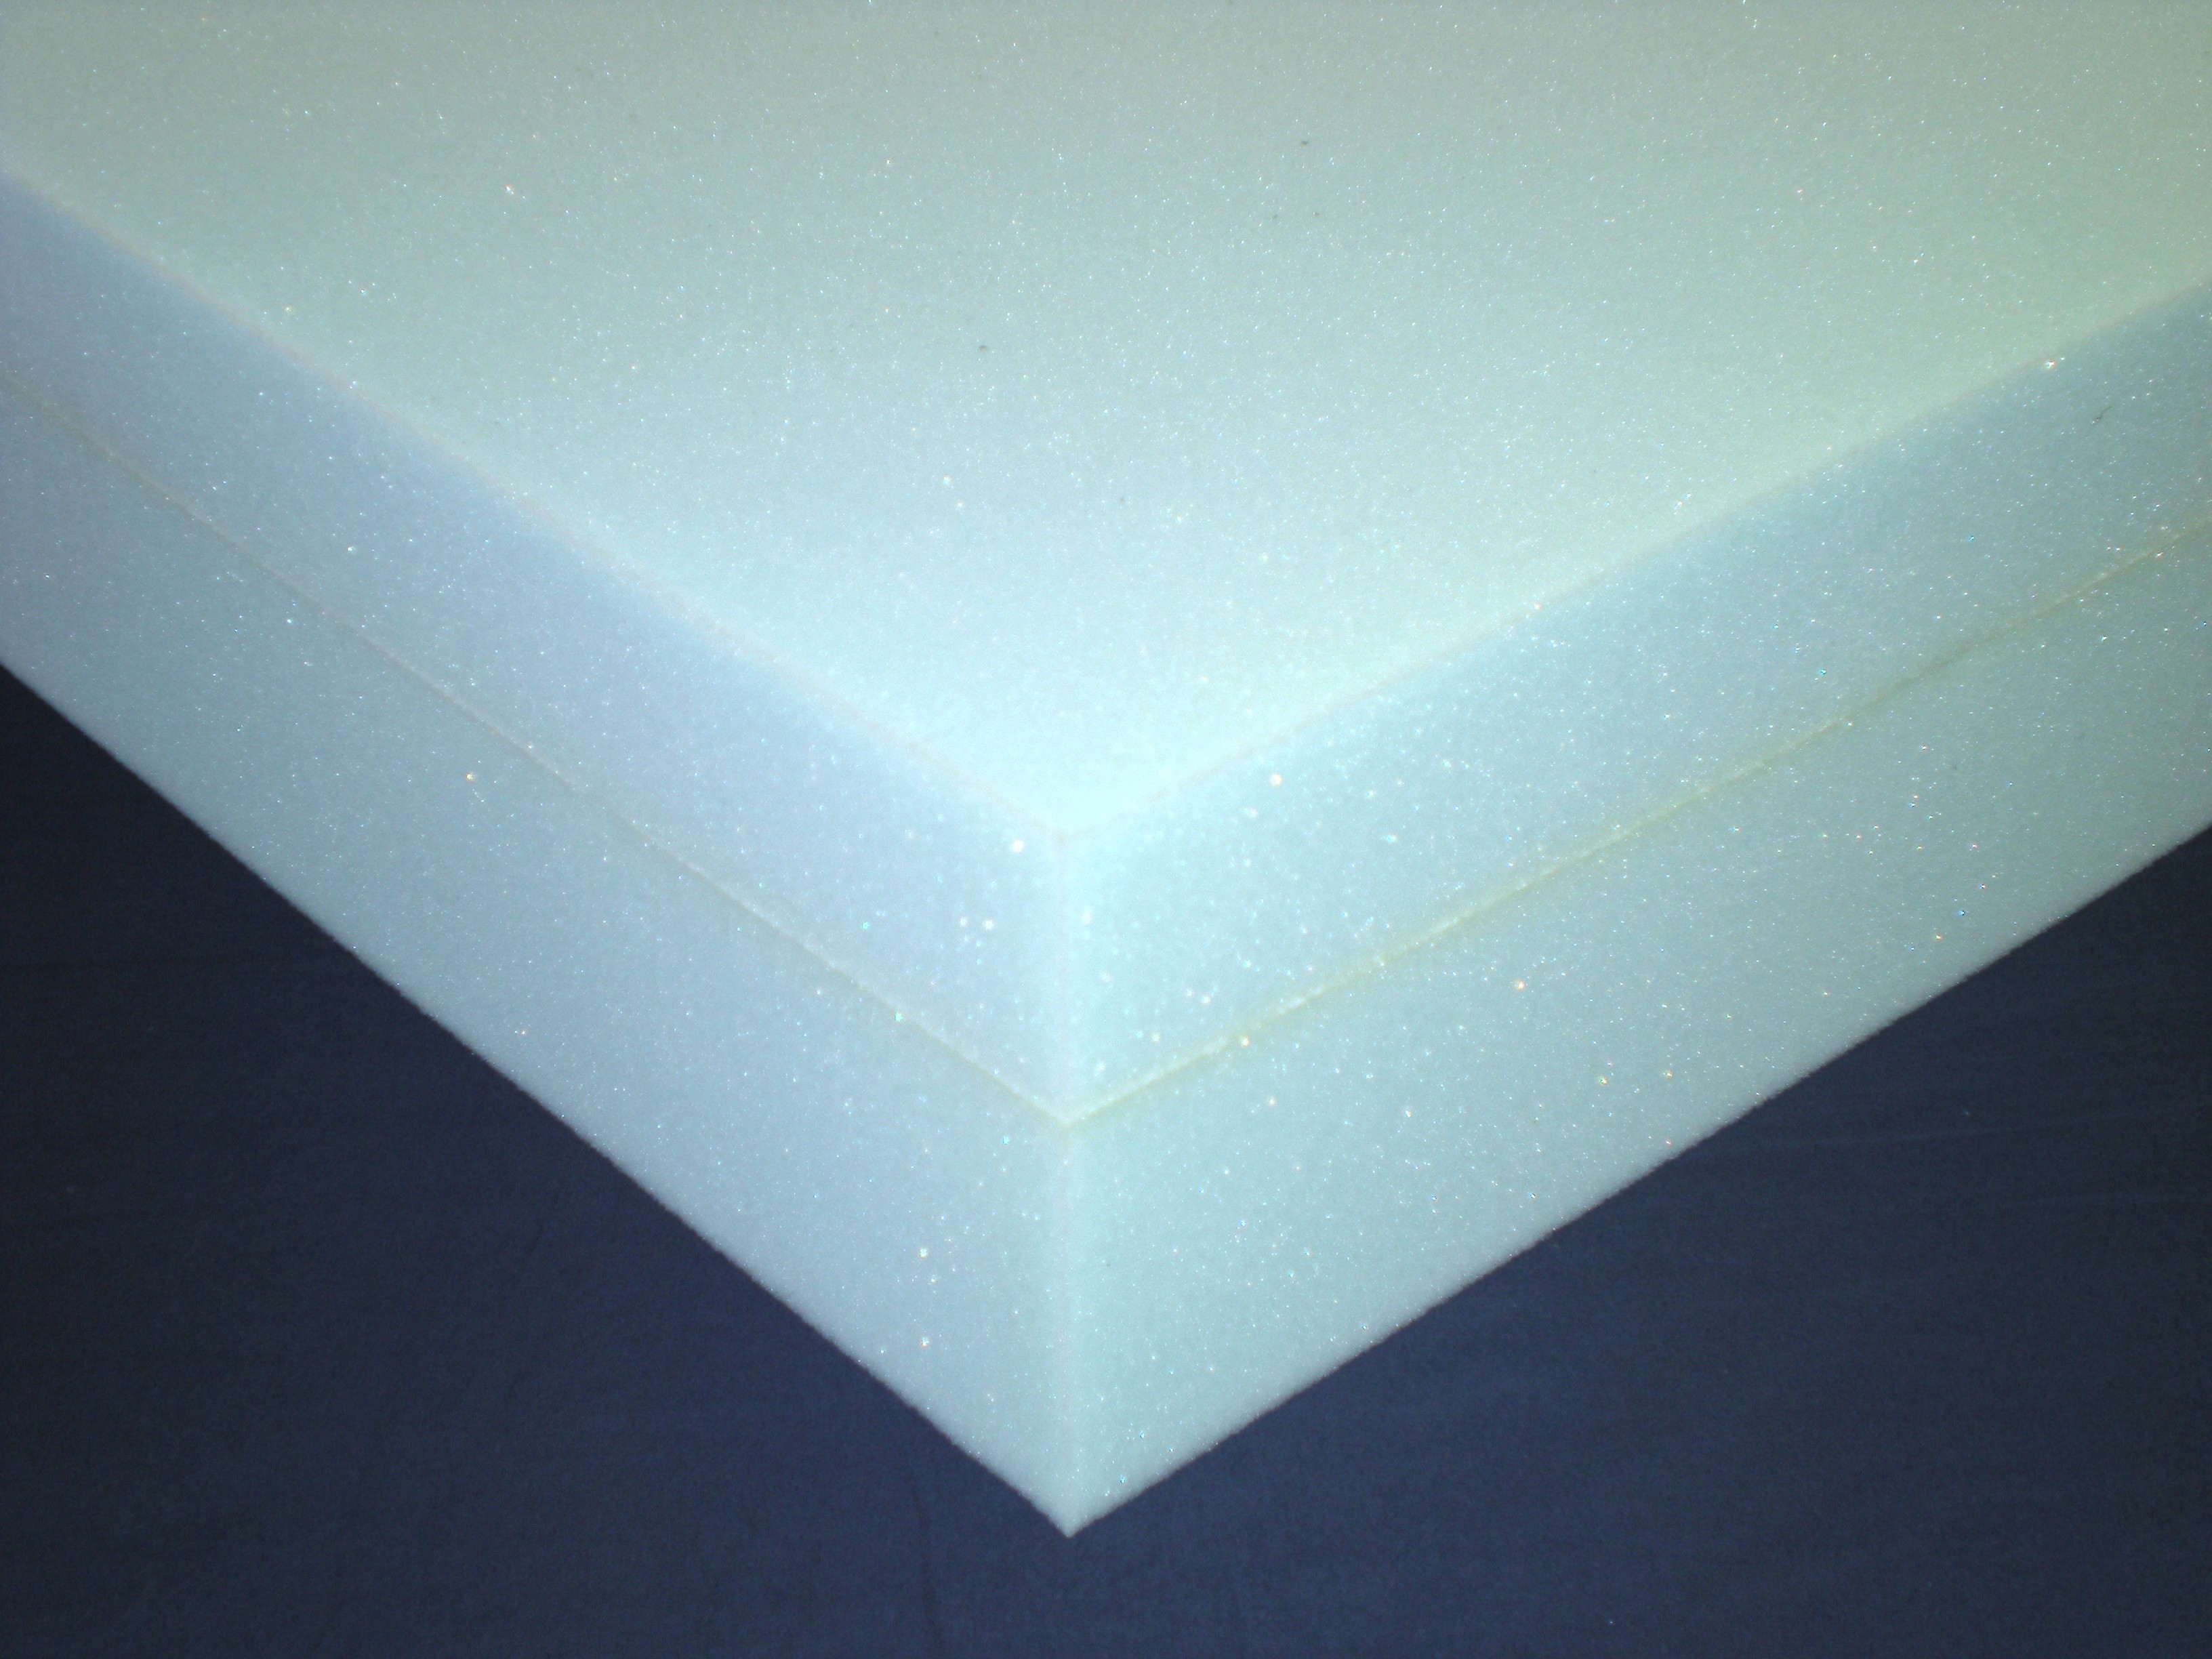 Comfort Foam SuppliesFoam Supplier Custom Foam Foam